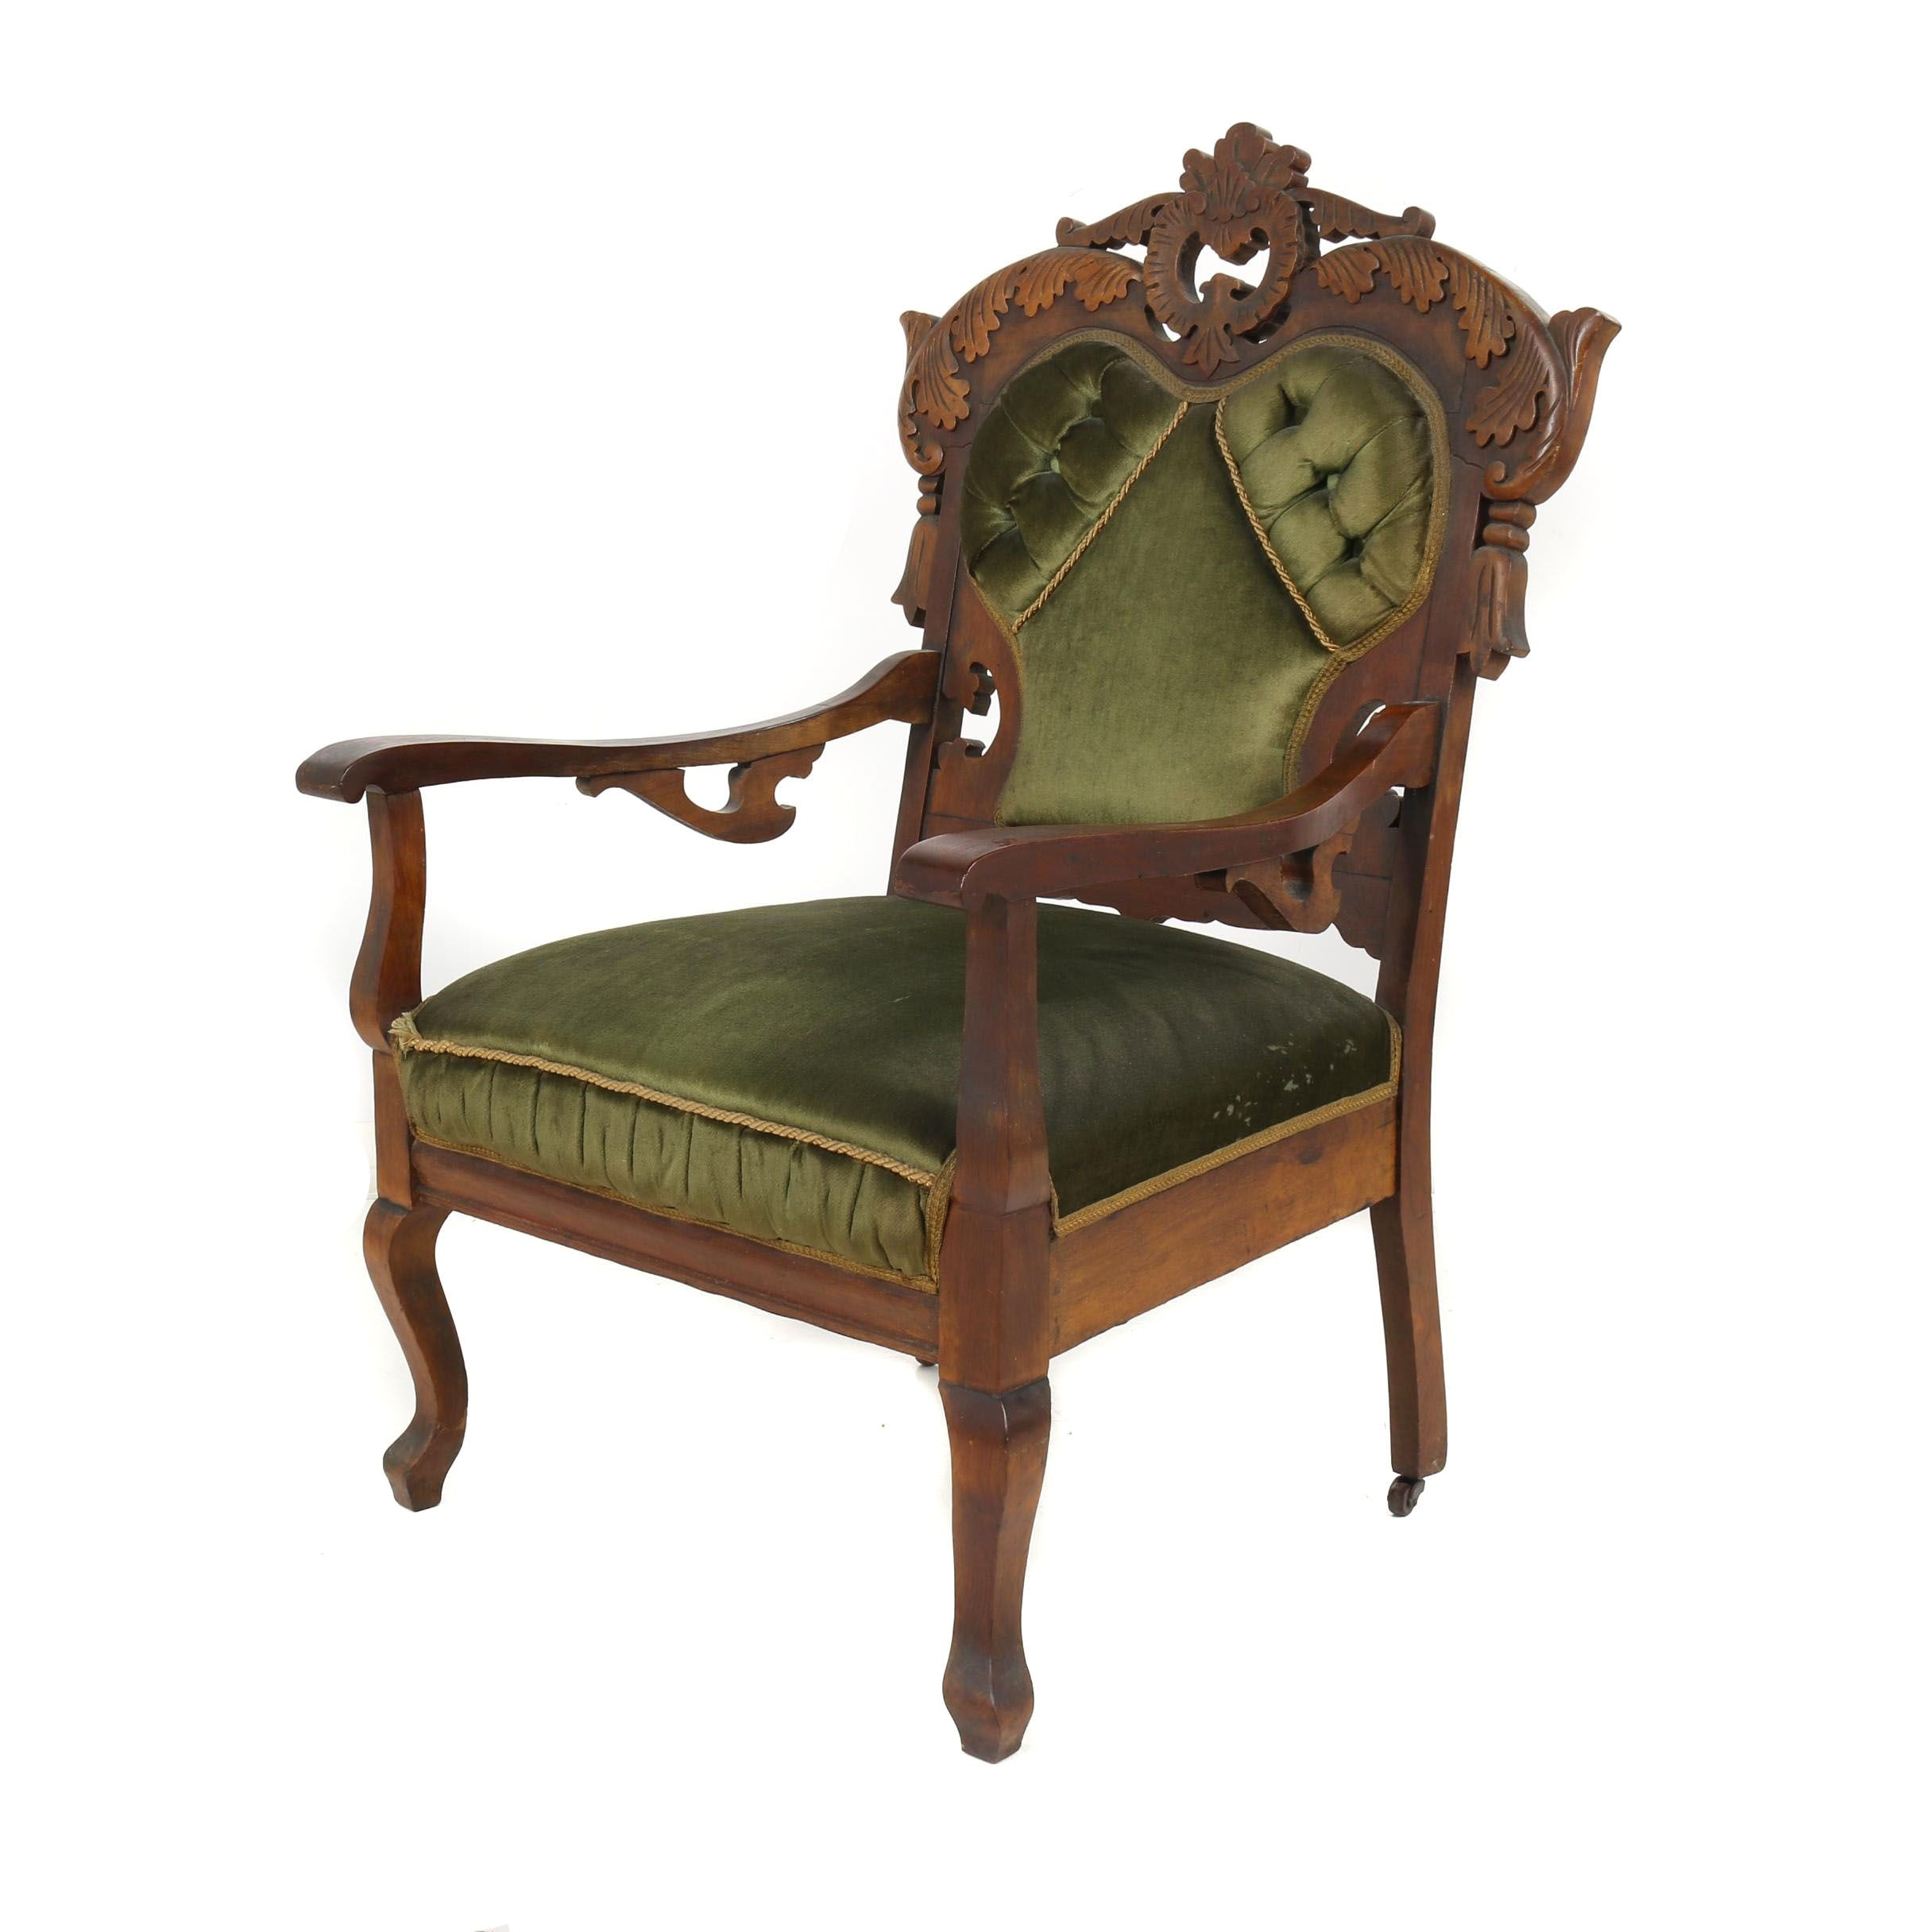 Eastlake Victorian Carved Walnut Frame Upholstered Armchair, 19th Century